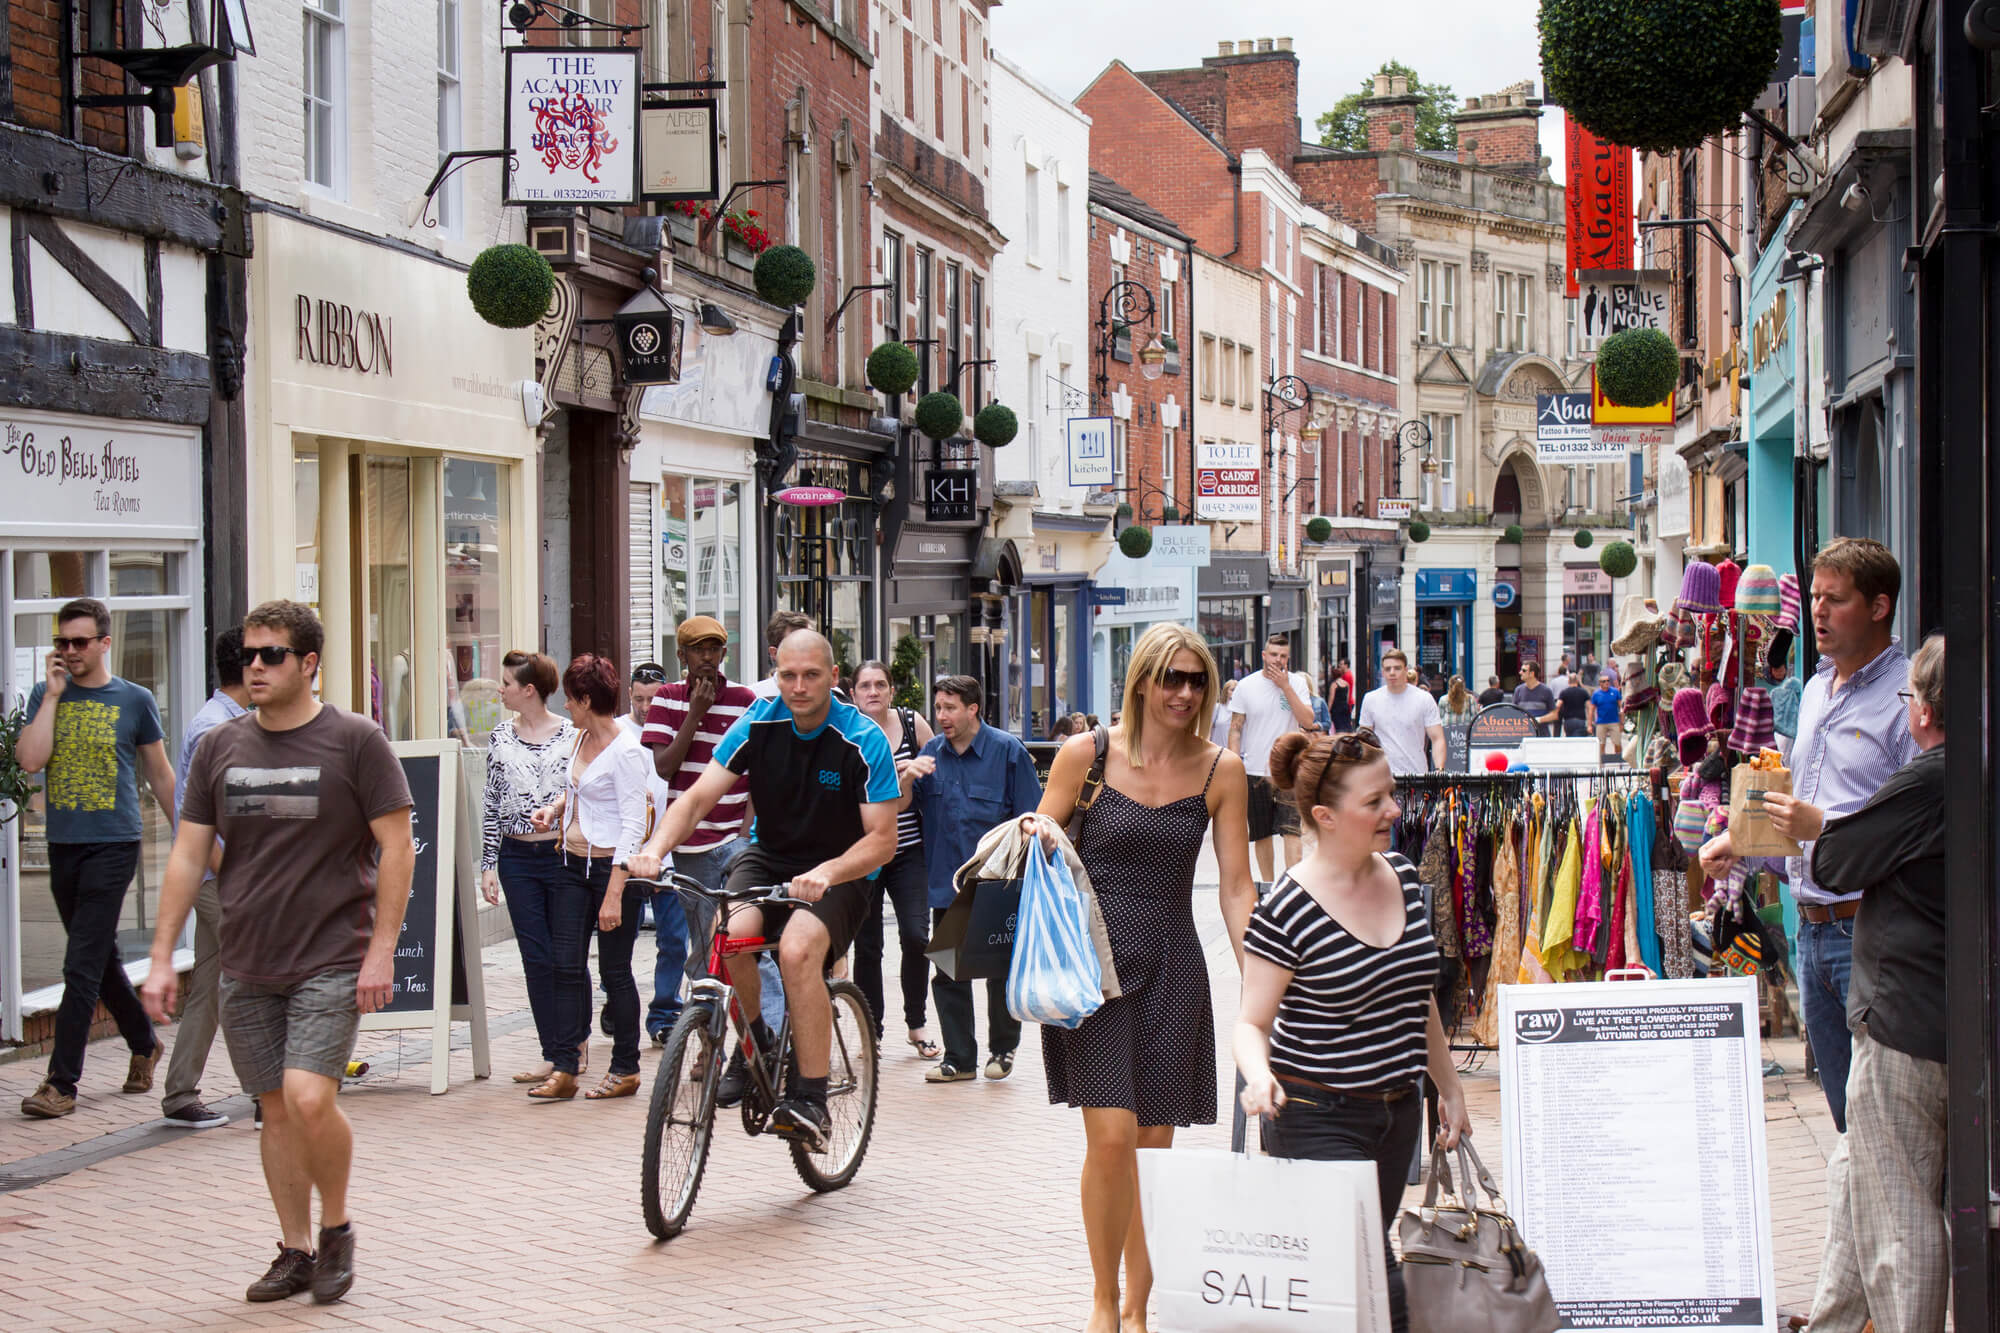 Busy shopping street, Sadler Gate in Derby's Cathedral Quarter